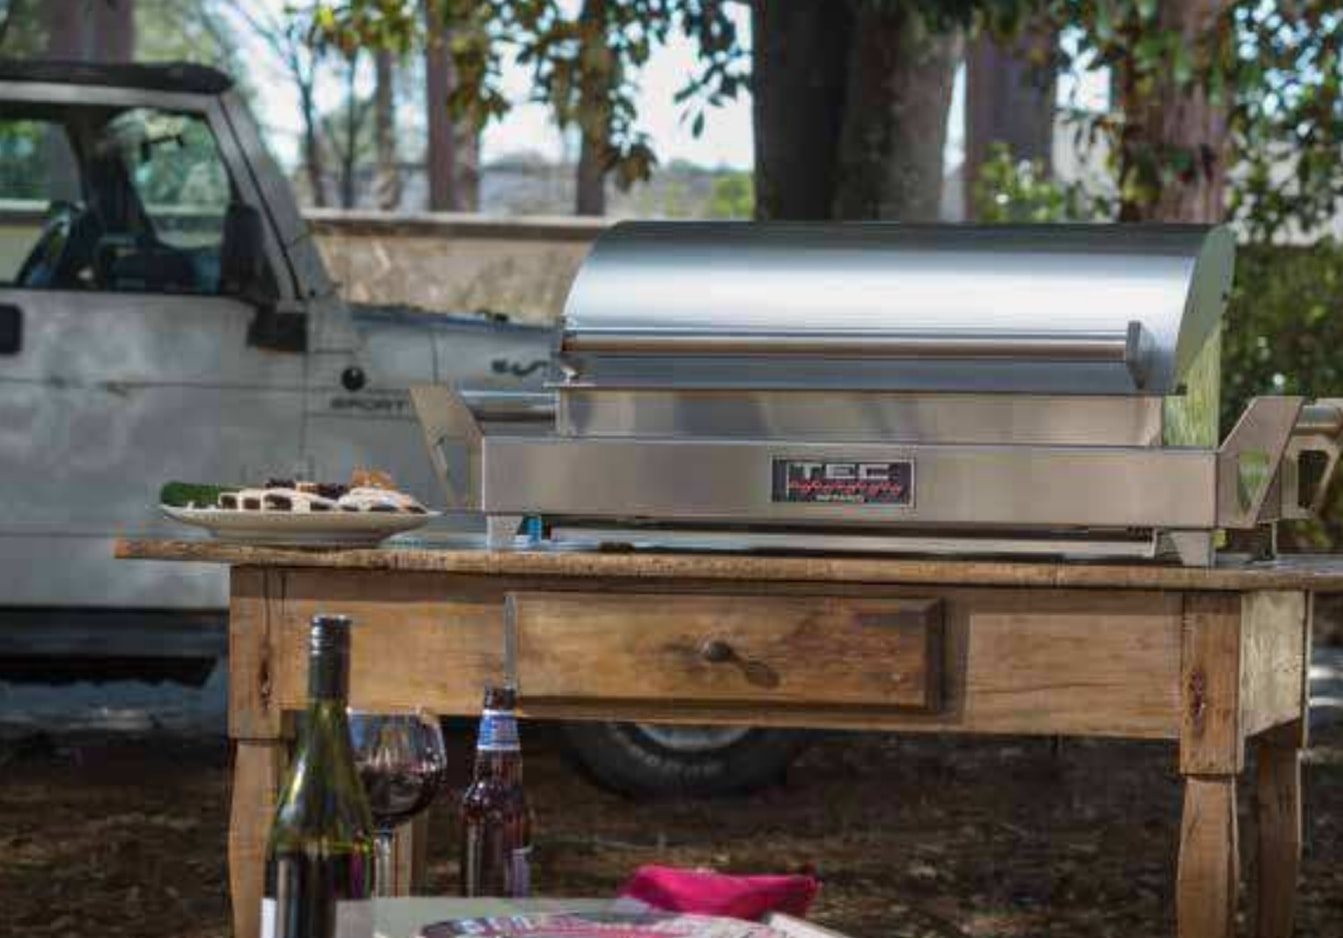 Cooking With infrared grills explained